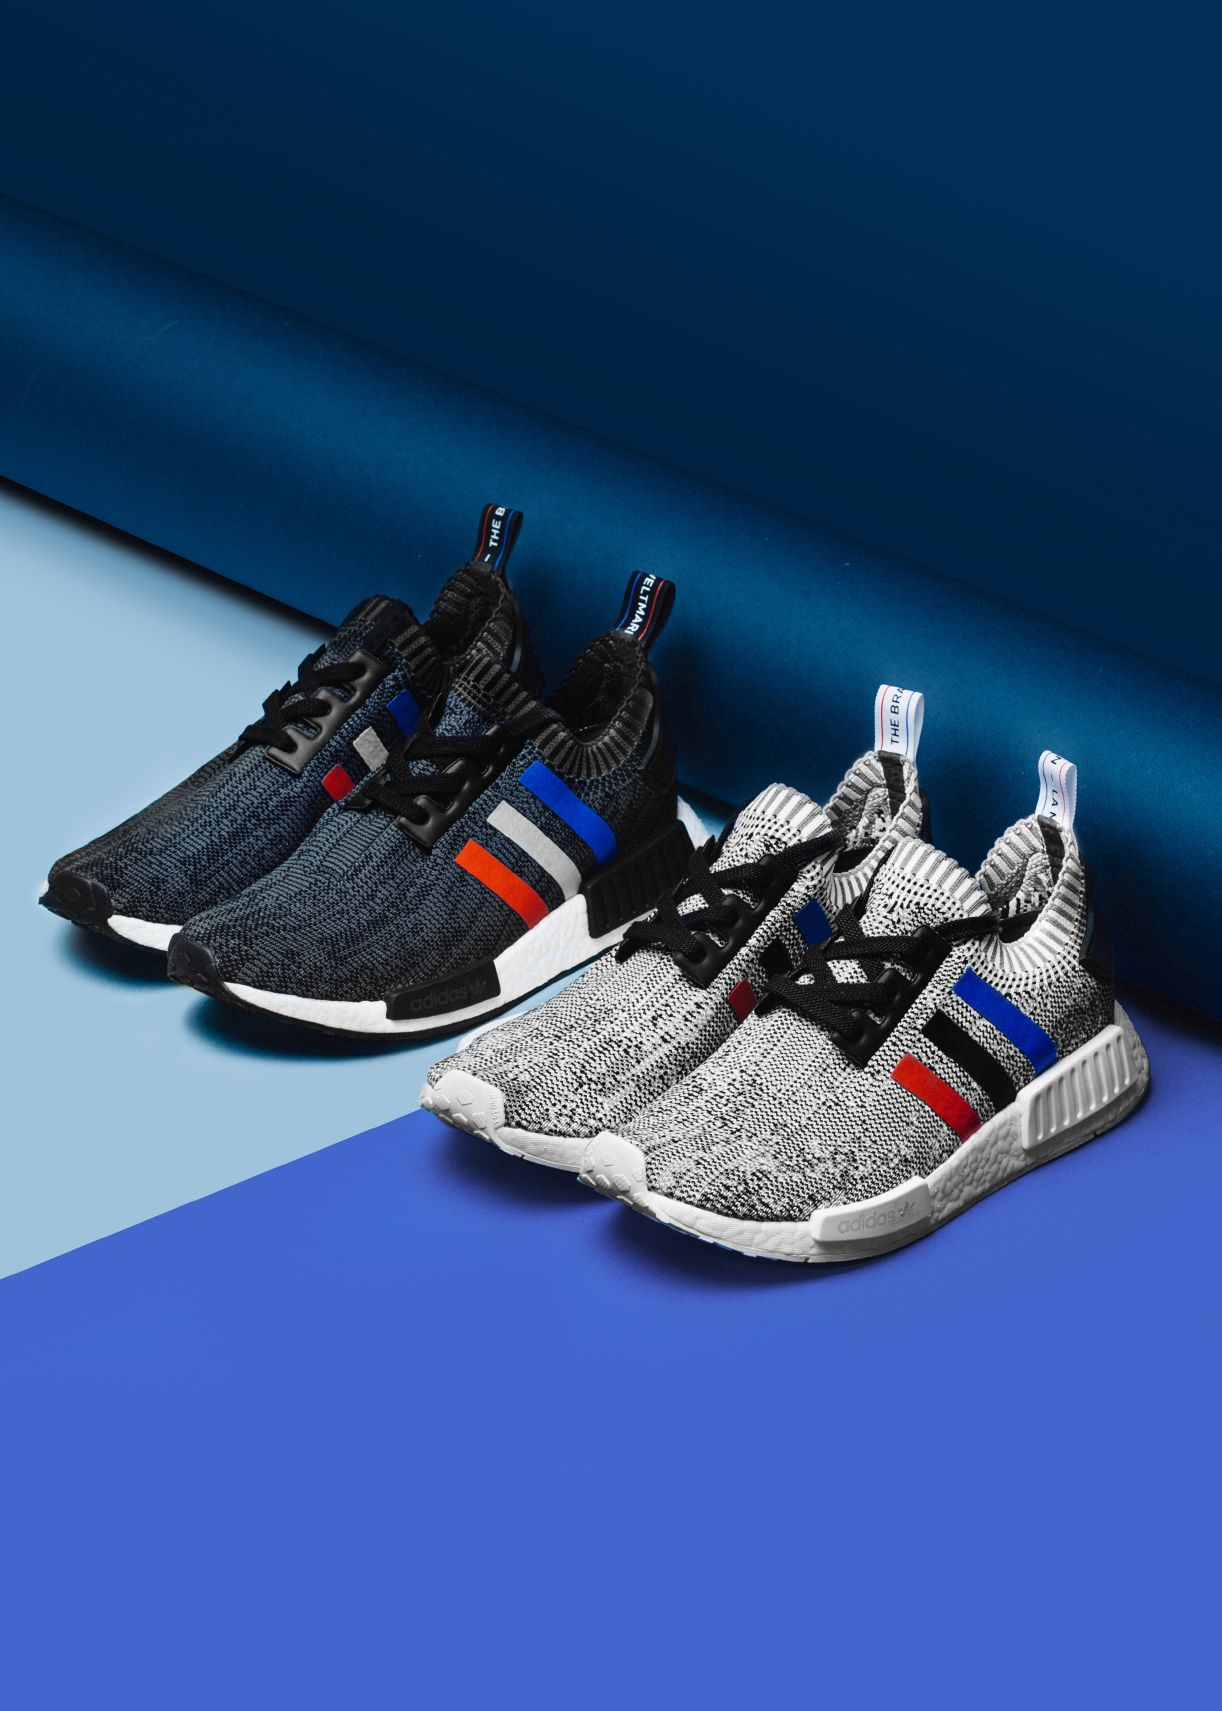 brand new b670e ccb92 Adidas NMD Tri Color Pack  Adidas  NMD  TriColor  Fashion  Streetwear  Style   Urban  Lookbook  Photography  Footwear  Sneakers  Kicks  Shoes